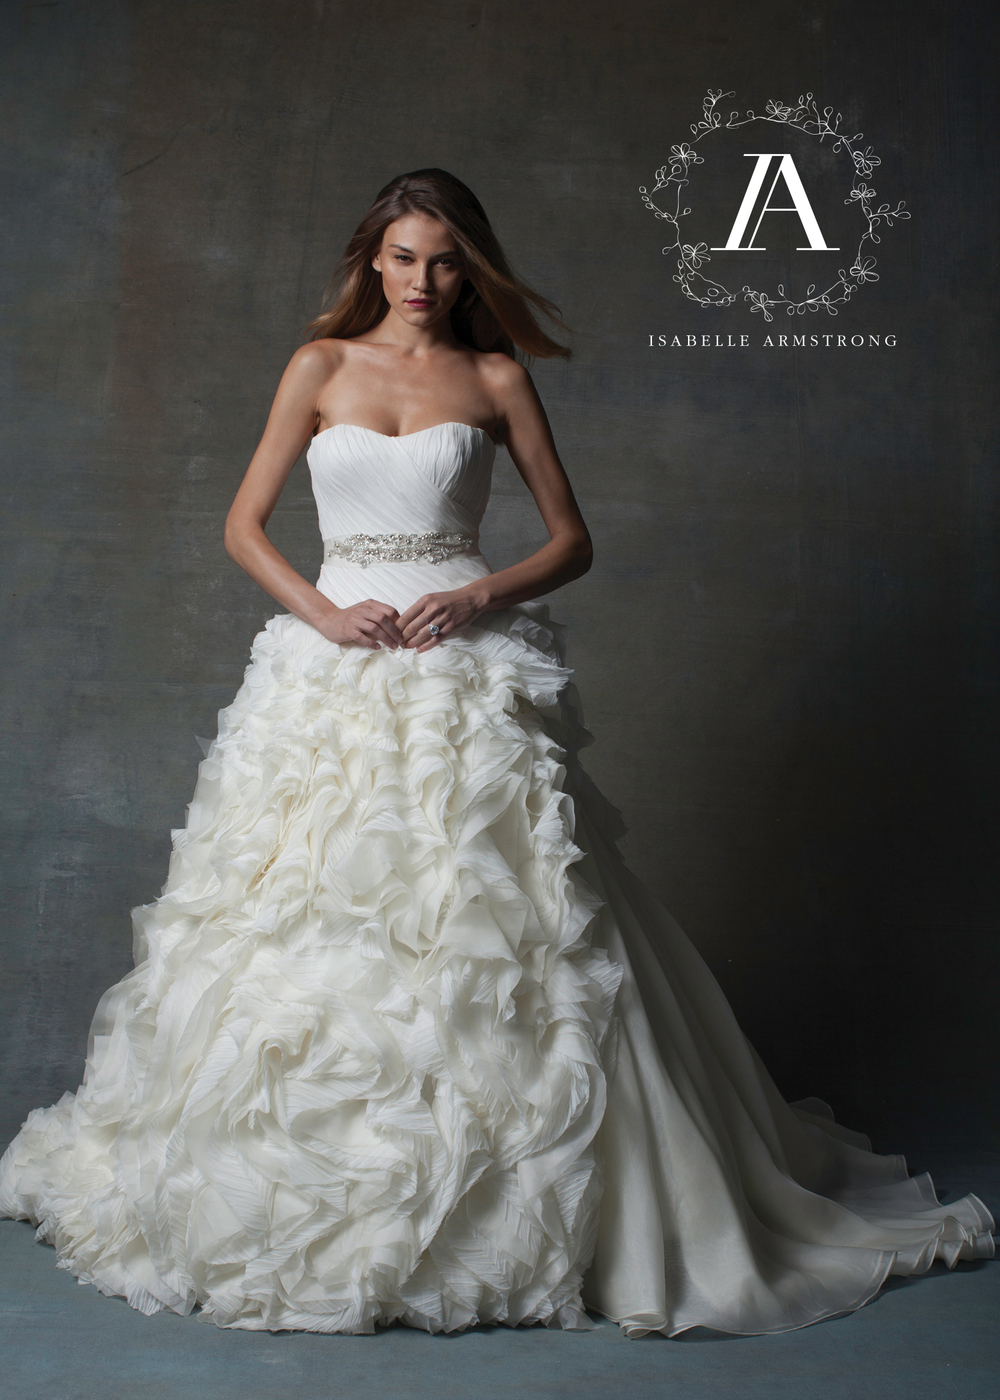 Isabelle armstrong wedding gowns new bridal couture for Affordable couture wedding dresses